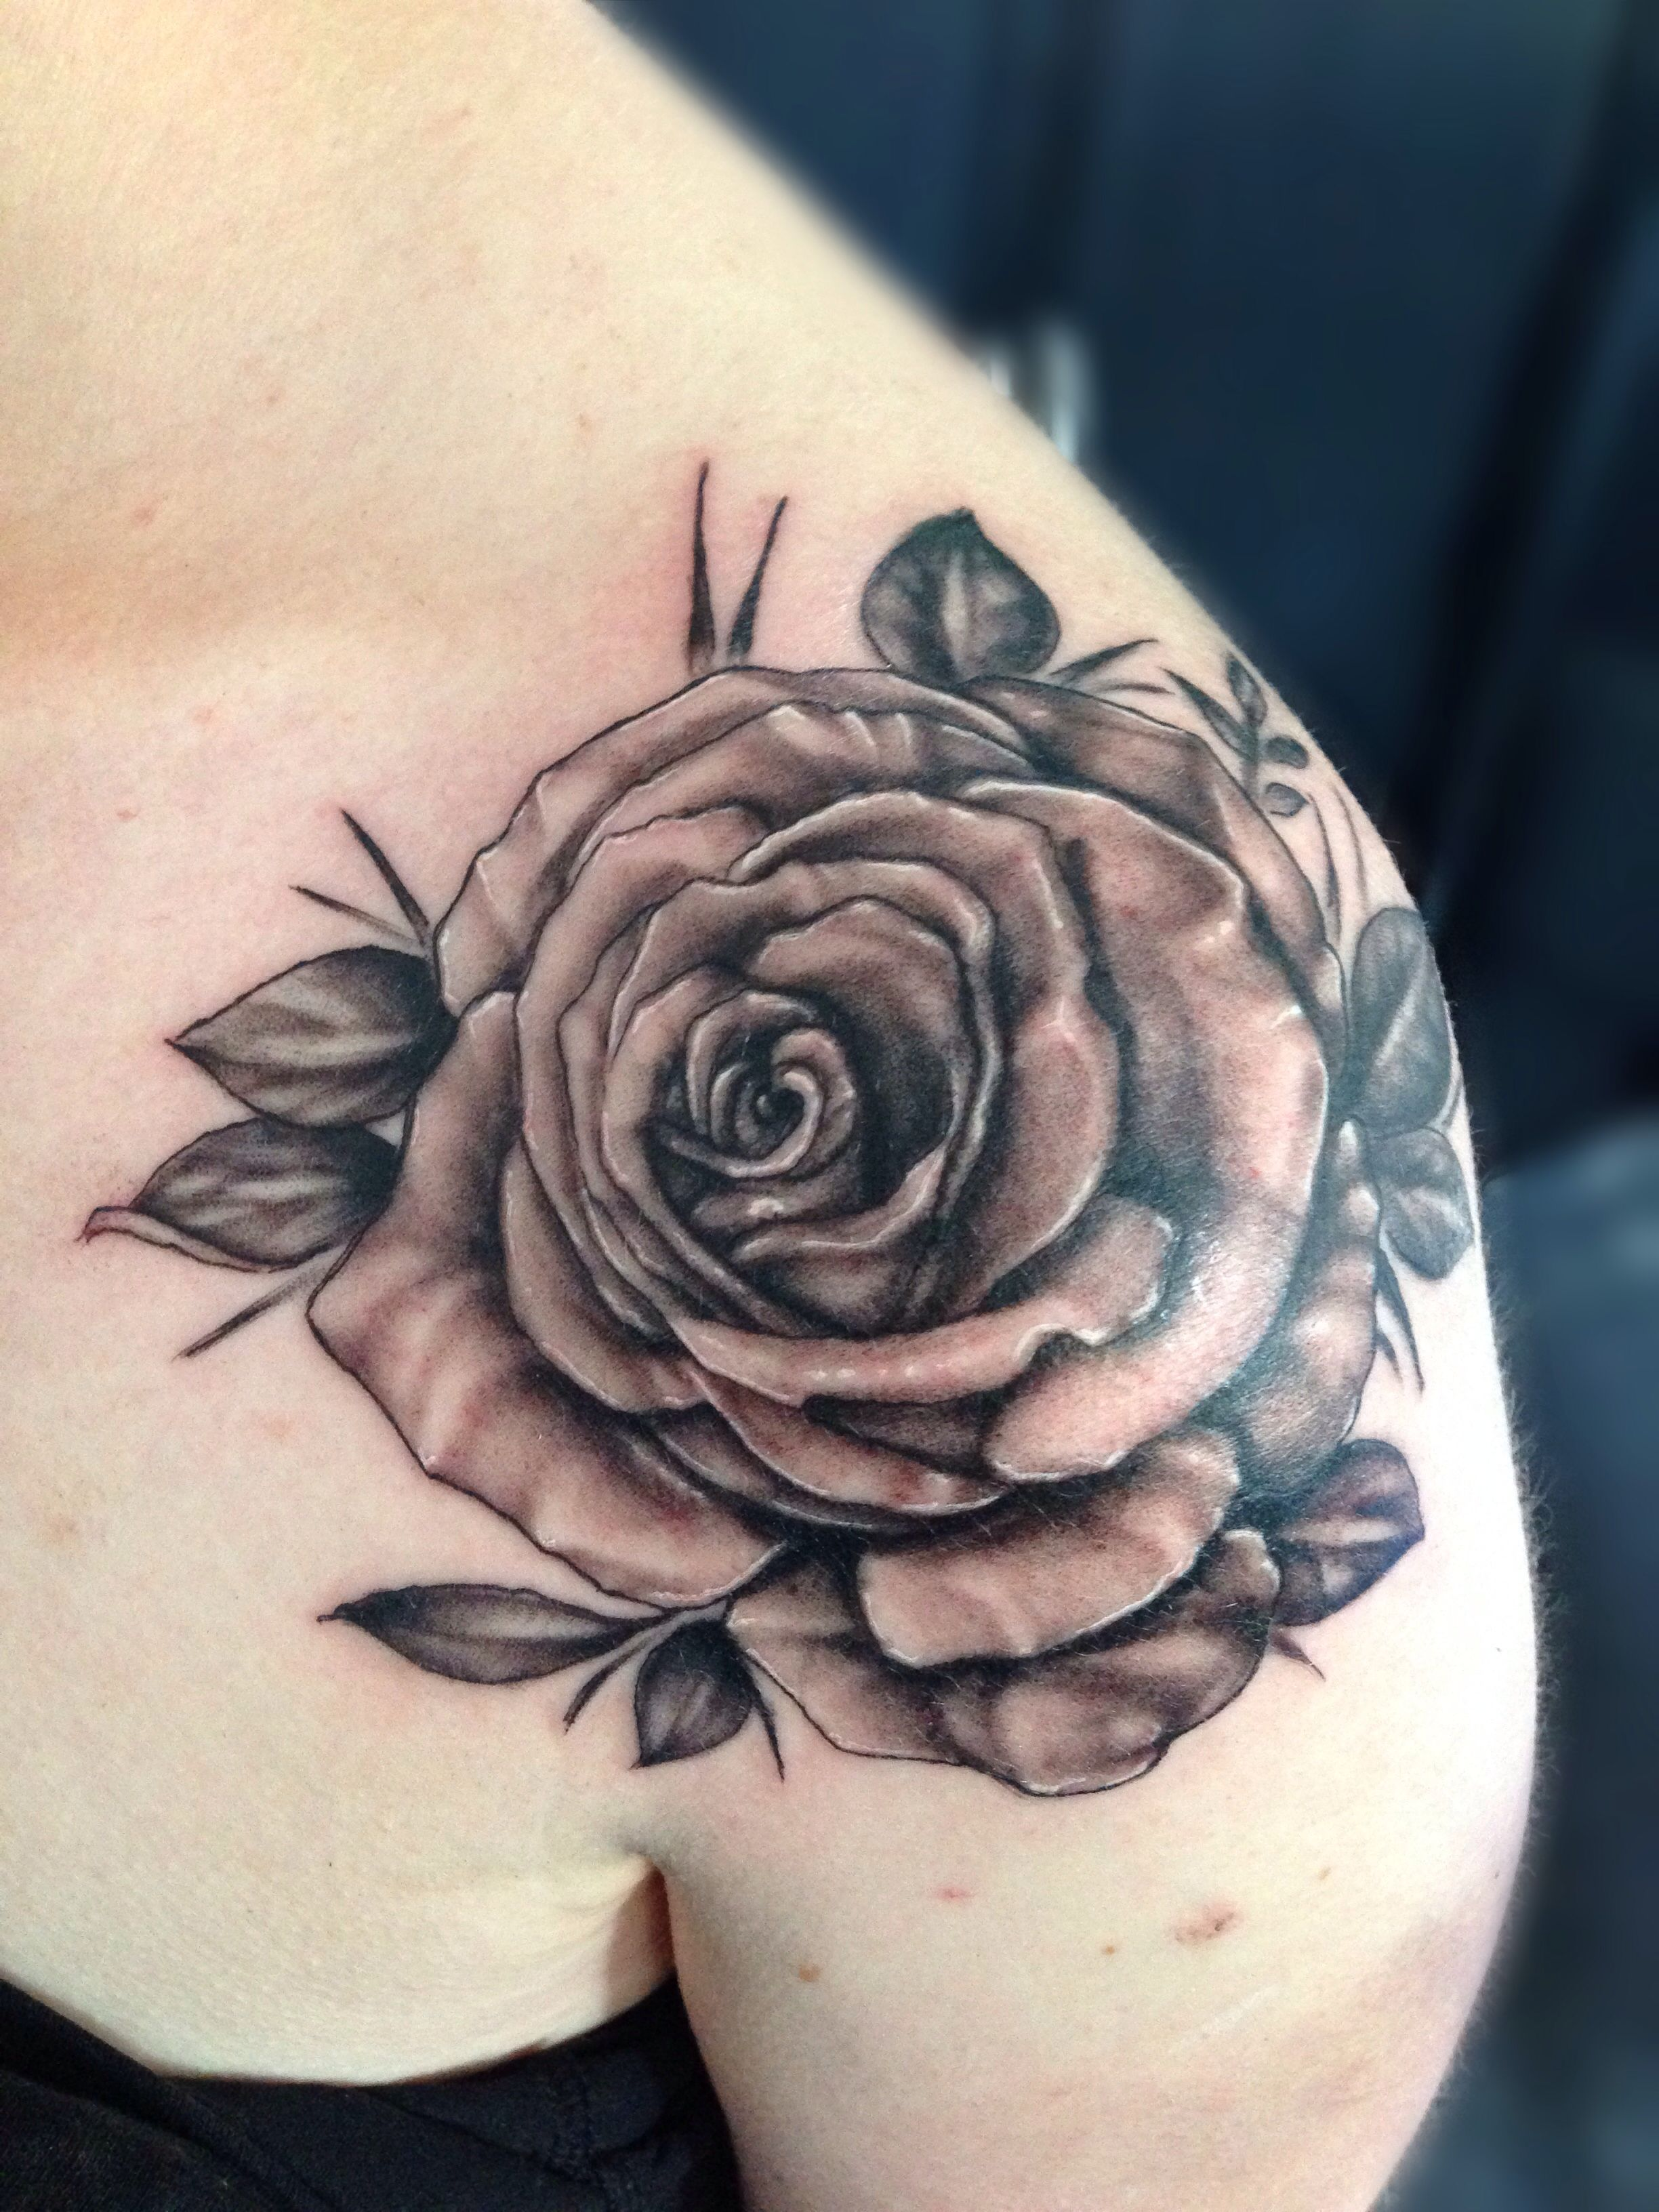 Rose Tattoo Roos Shoulder Schouder Arm Front Neck Roses Black Grey Tattoo Royal Ink The Netherlands Front Neck Tattoo Front Shoulder Tattoos Neck Tattoo